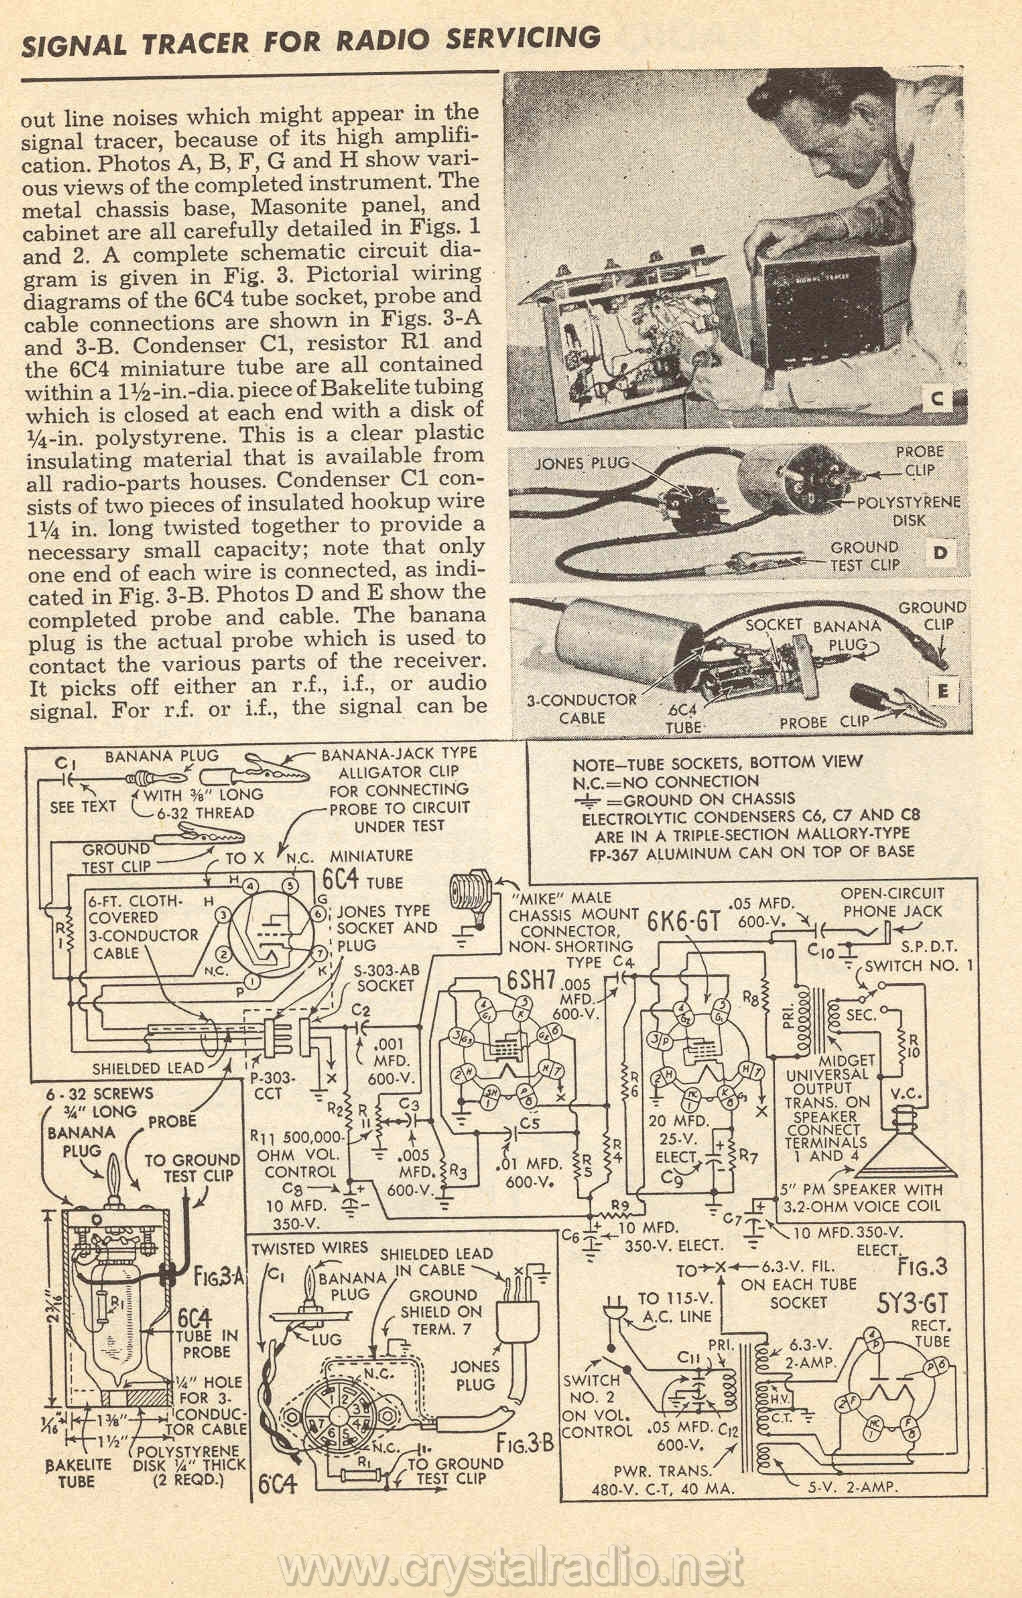 Tube Circuits Crystal Radio Circuit Signal Tracer For Servicing